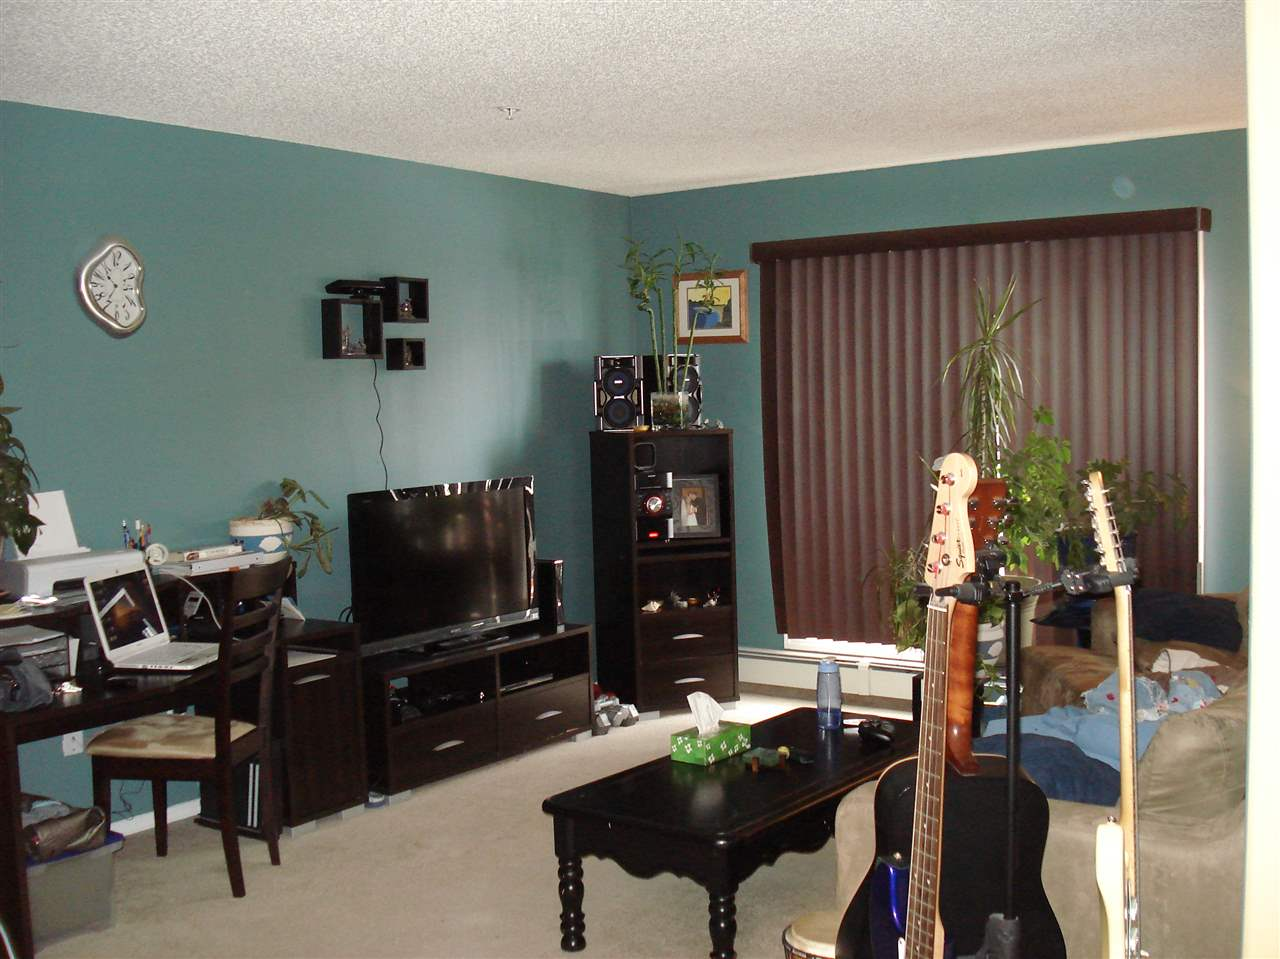 Photo 16: 106 9910 107 Street: Morinville Condo for sale : MLS® # E4073141